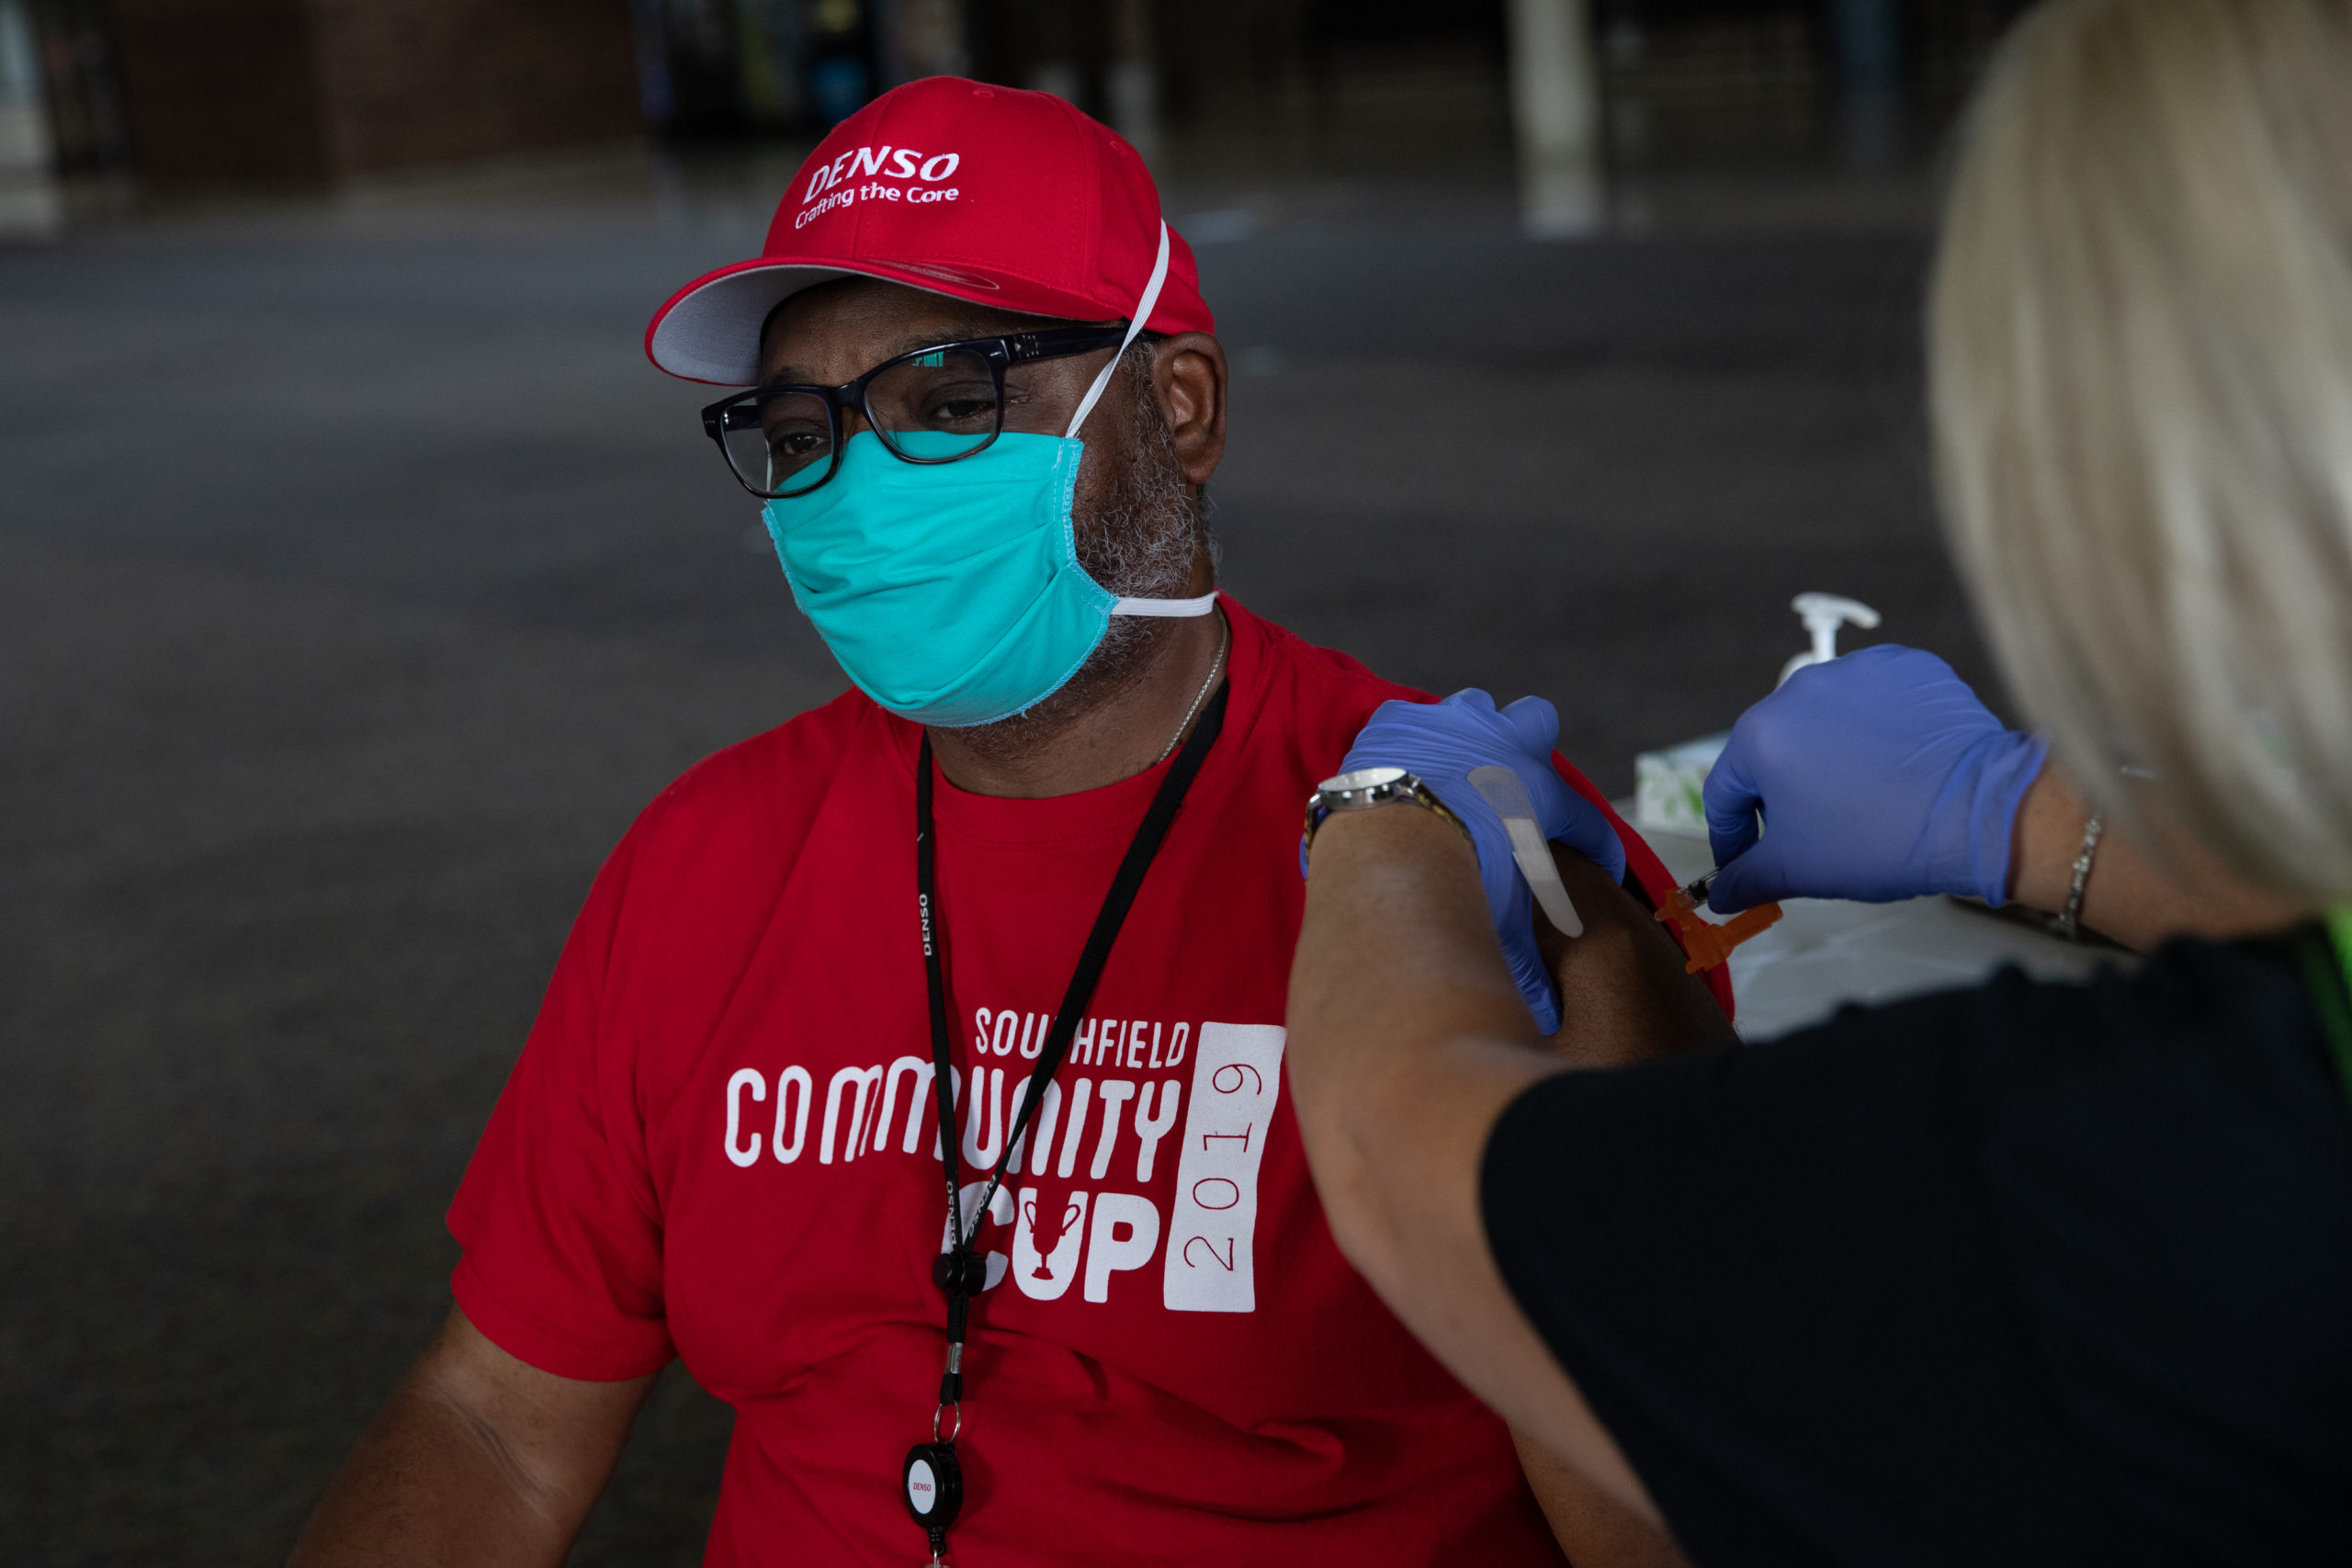 SOUTHFIELD, MI - AUGUST 24: Anthony Faulkner receives his booster dose of the Moderna coronavirus (COVID-19) vaccine during an Oakland County Health Department vaccination clinic at the Southfield Pavilion on August 24, 2021 in Southfield, Michigan. Oakland County is the second county in Michigan to reach the state's goal of vaccinating 70% of its population. (Photo by Emily Elconin/Getty Images)